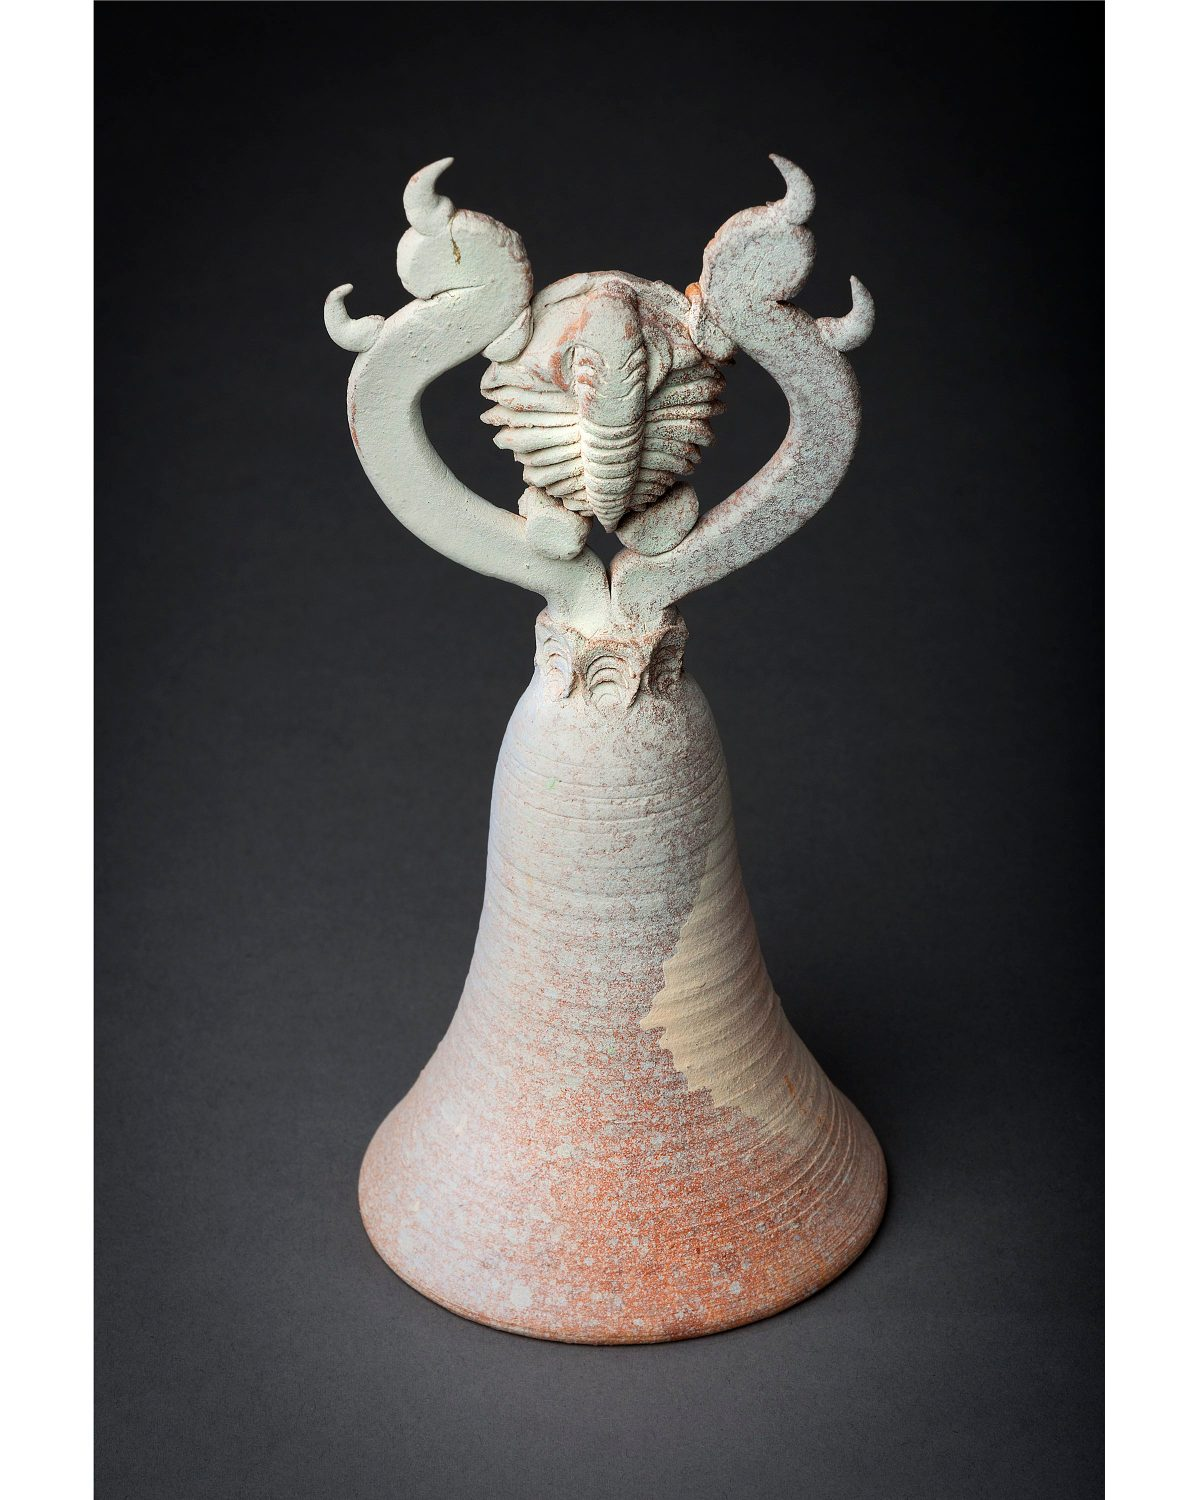 Jeanne McRight:  A Ceramist who migrated to Canada because of the escalation of the Vietnam War